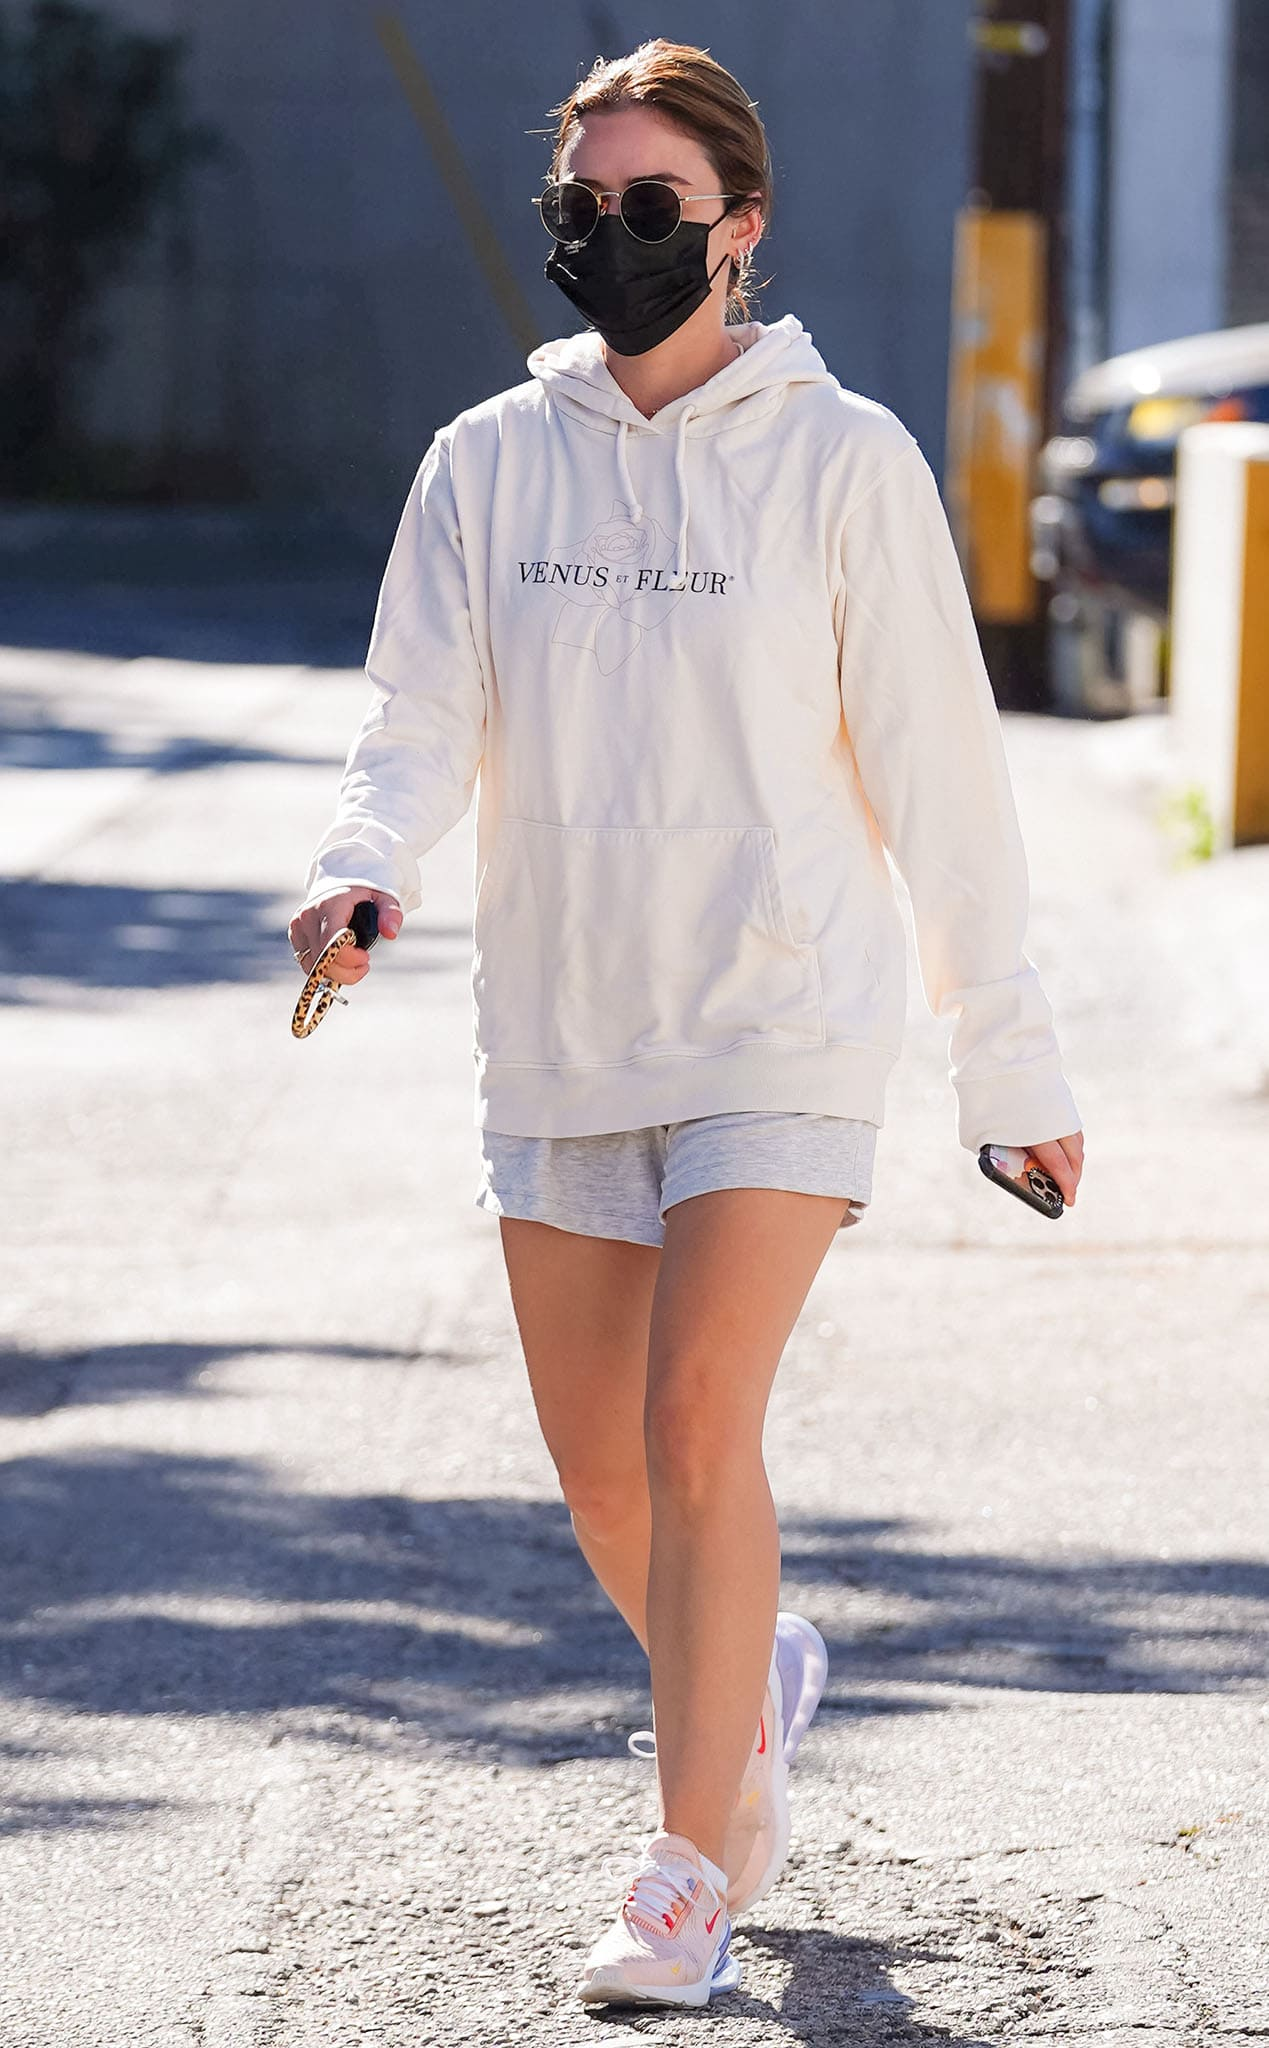 Lucy Hale strolls around Studio City in Venus Et Fleur hoodie on February 5, 2021